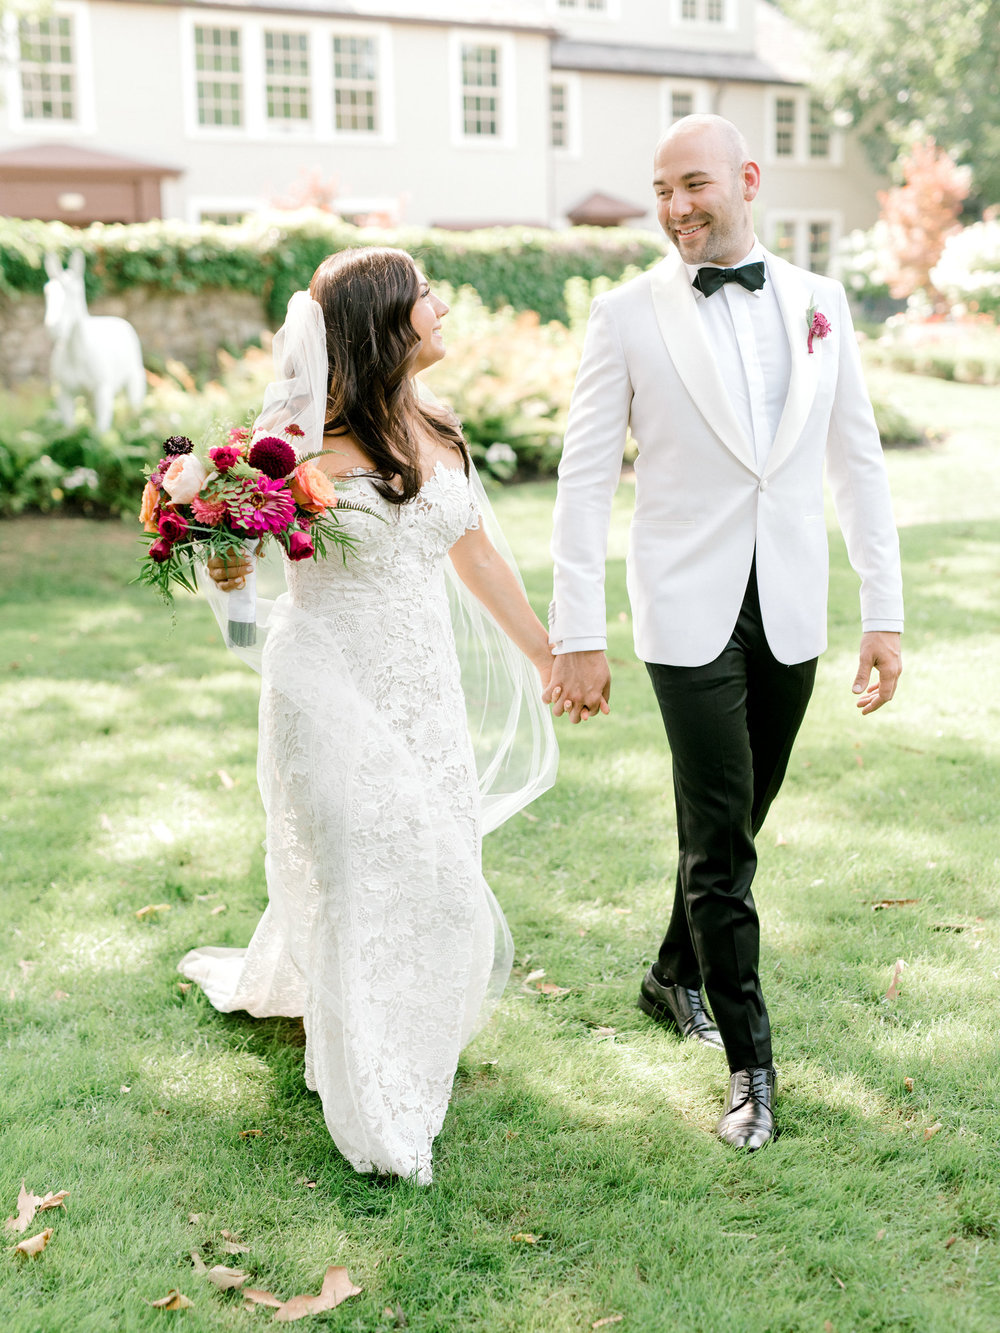 Quirky and cute summer wedding at the American Swedish Historical Museum in Philadelphia, Pennsylvania